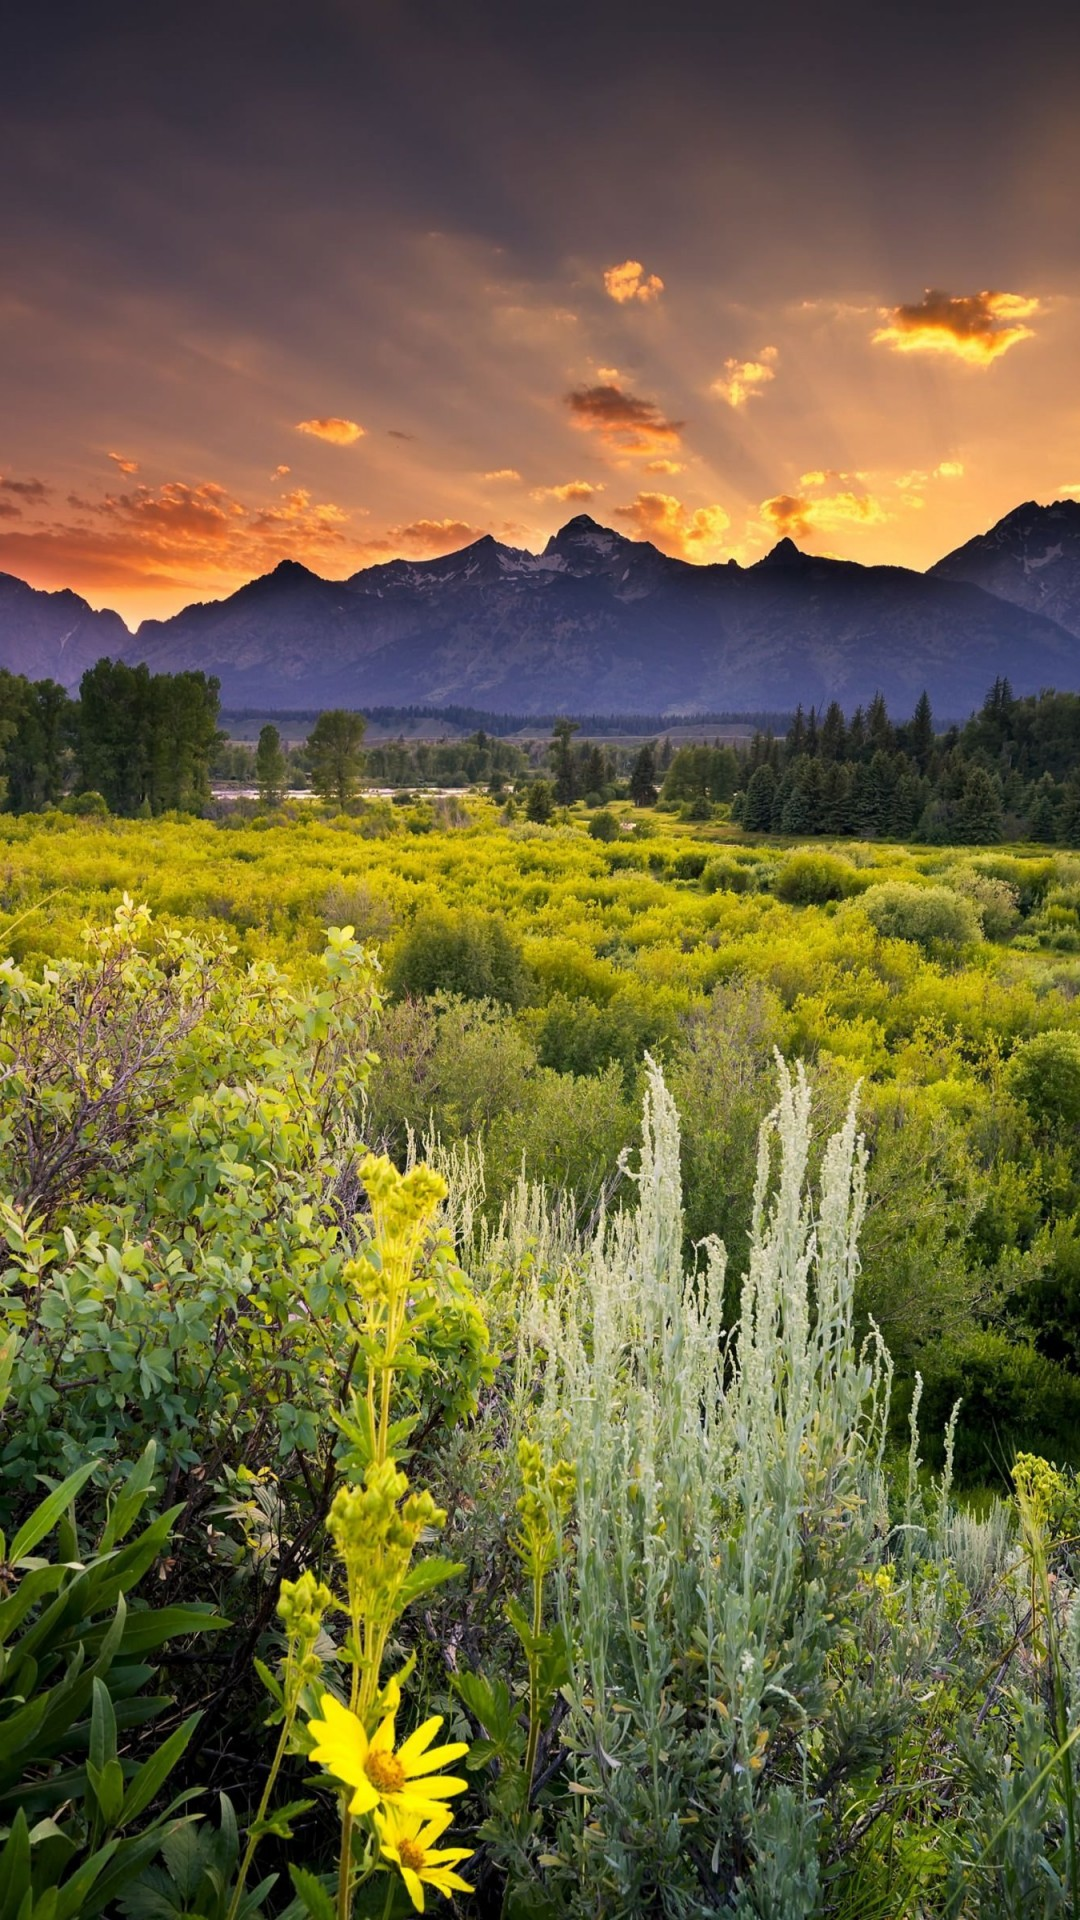 Sunset in Grand Teton National Park Wallpaper for HTC One